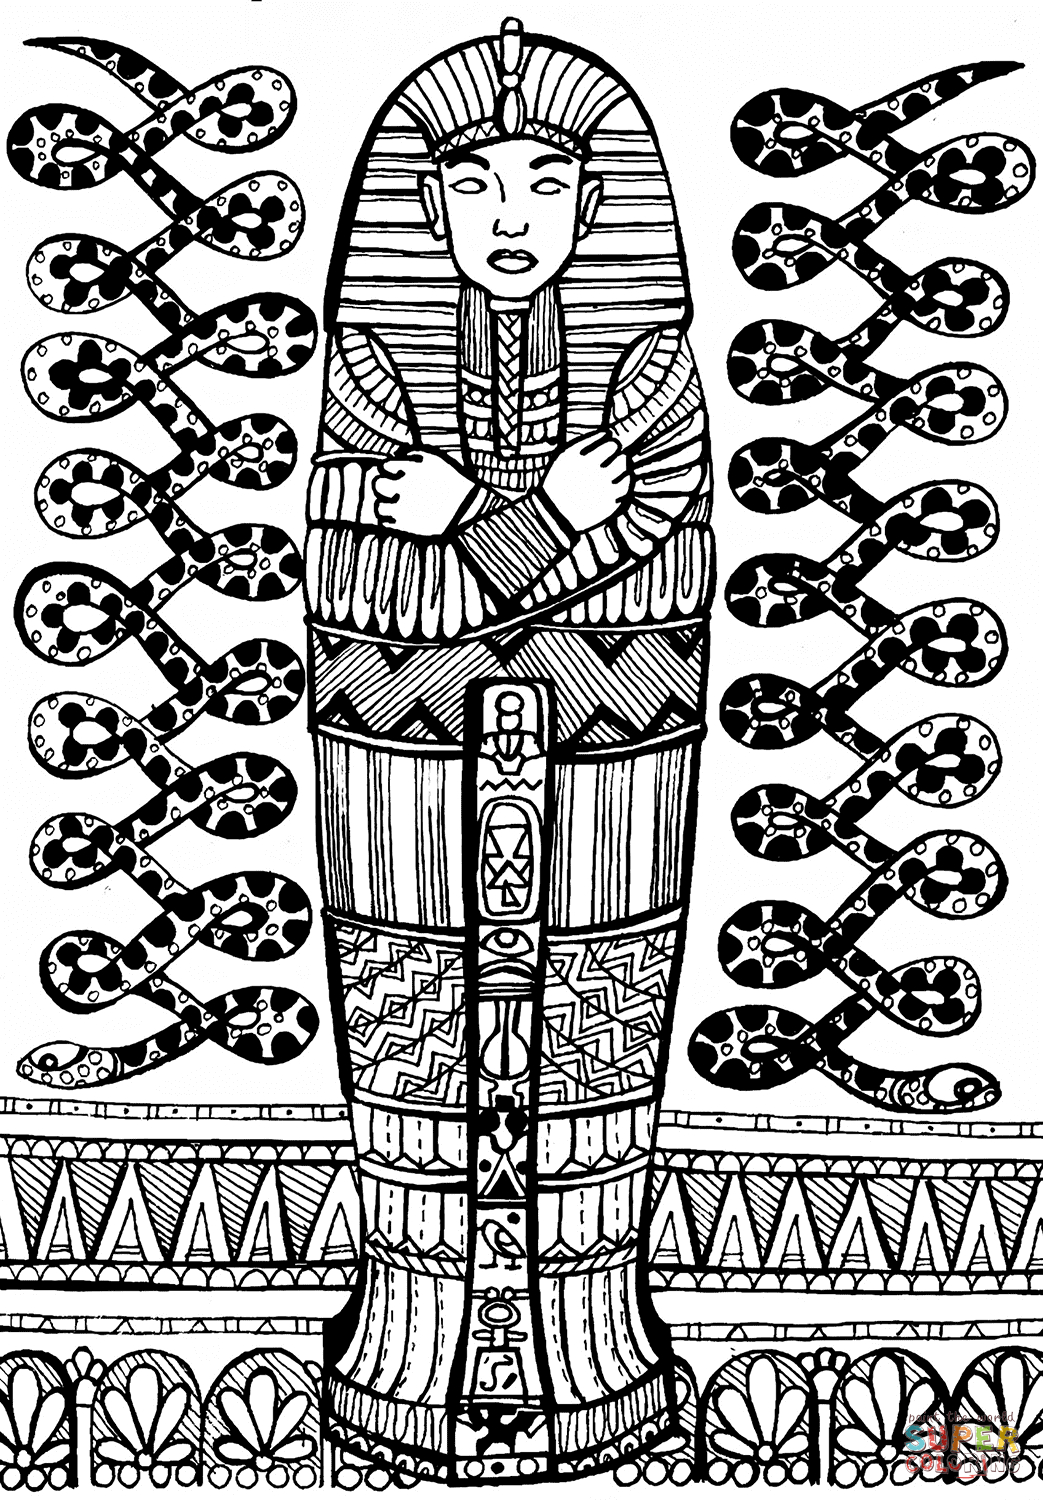 3 Sarcophagus Drawing Printable For Free Download On Ayoqq - Free Printable Sarcophagus